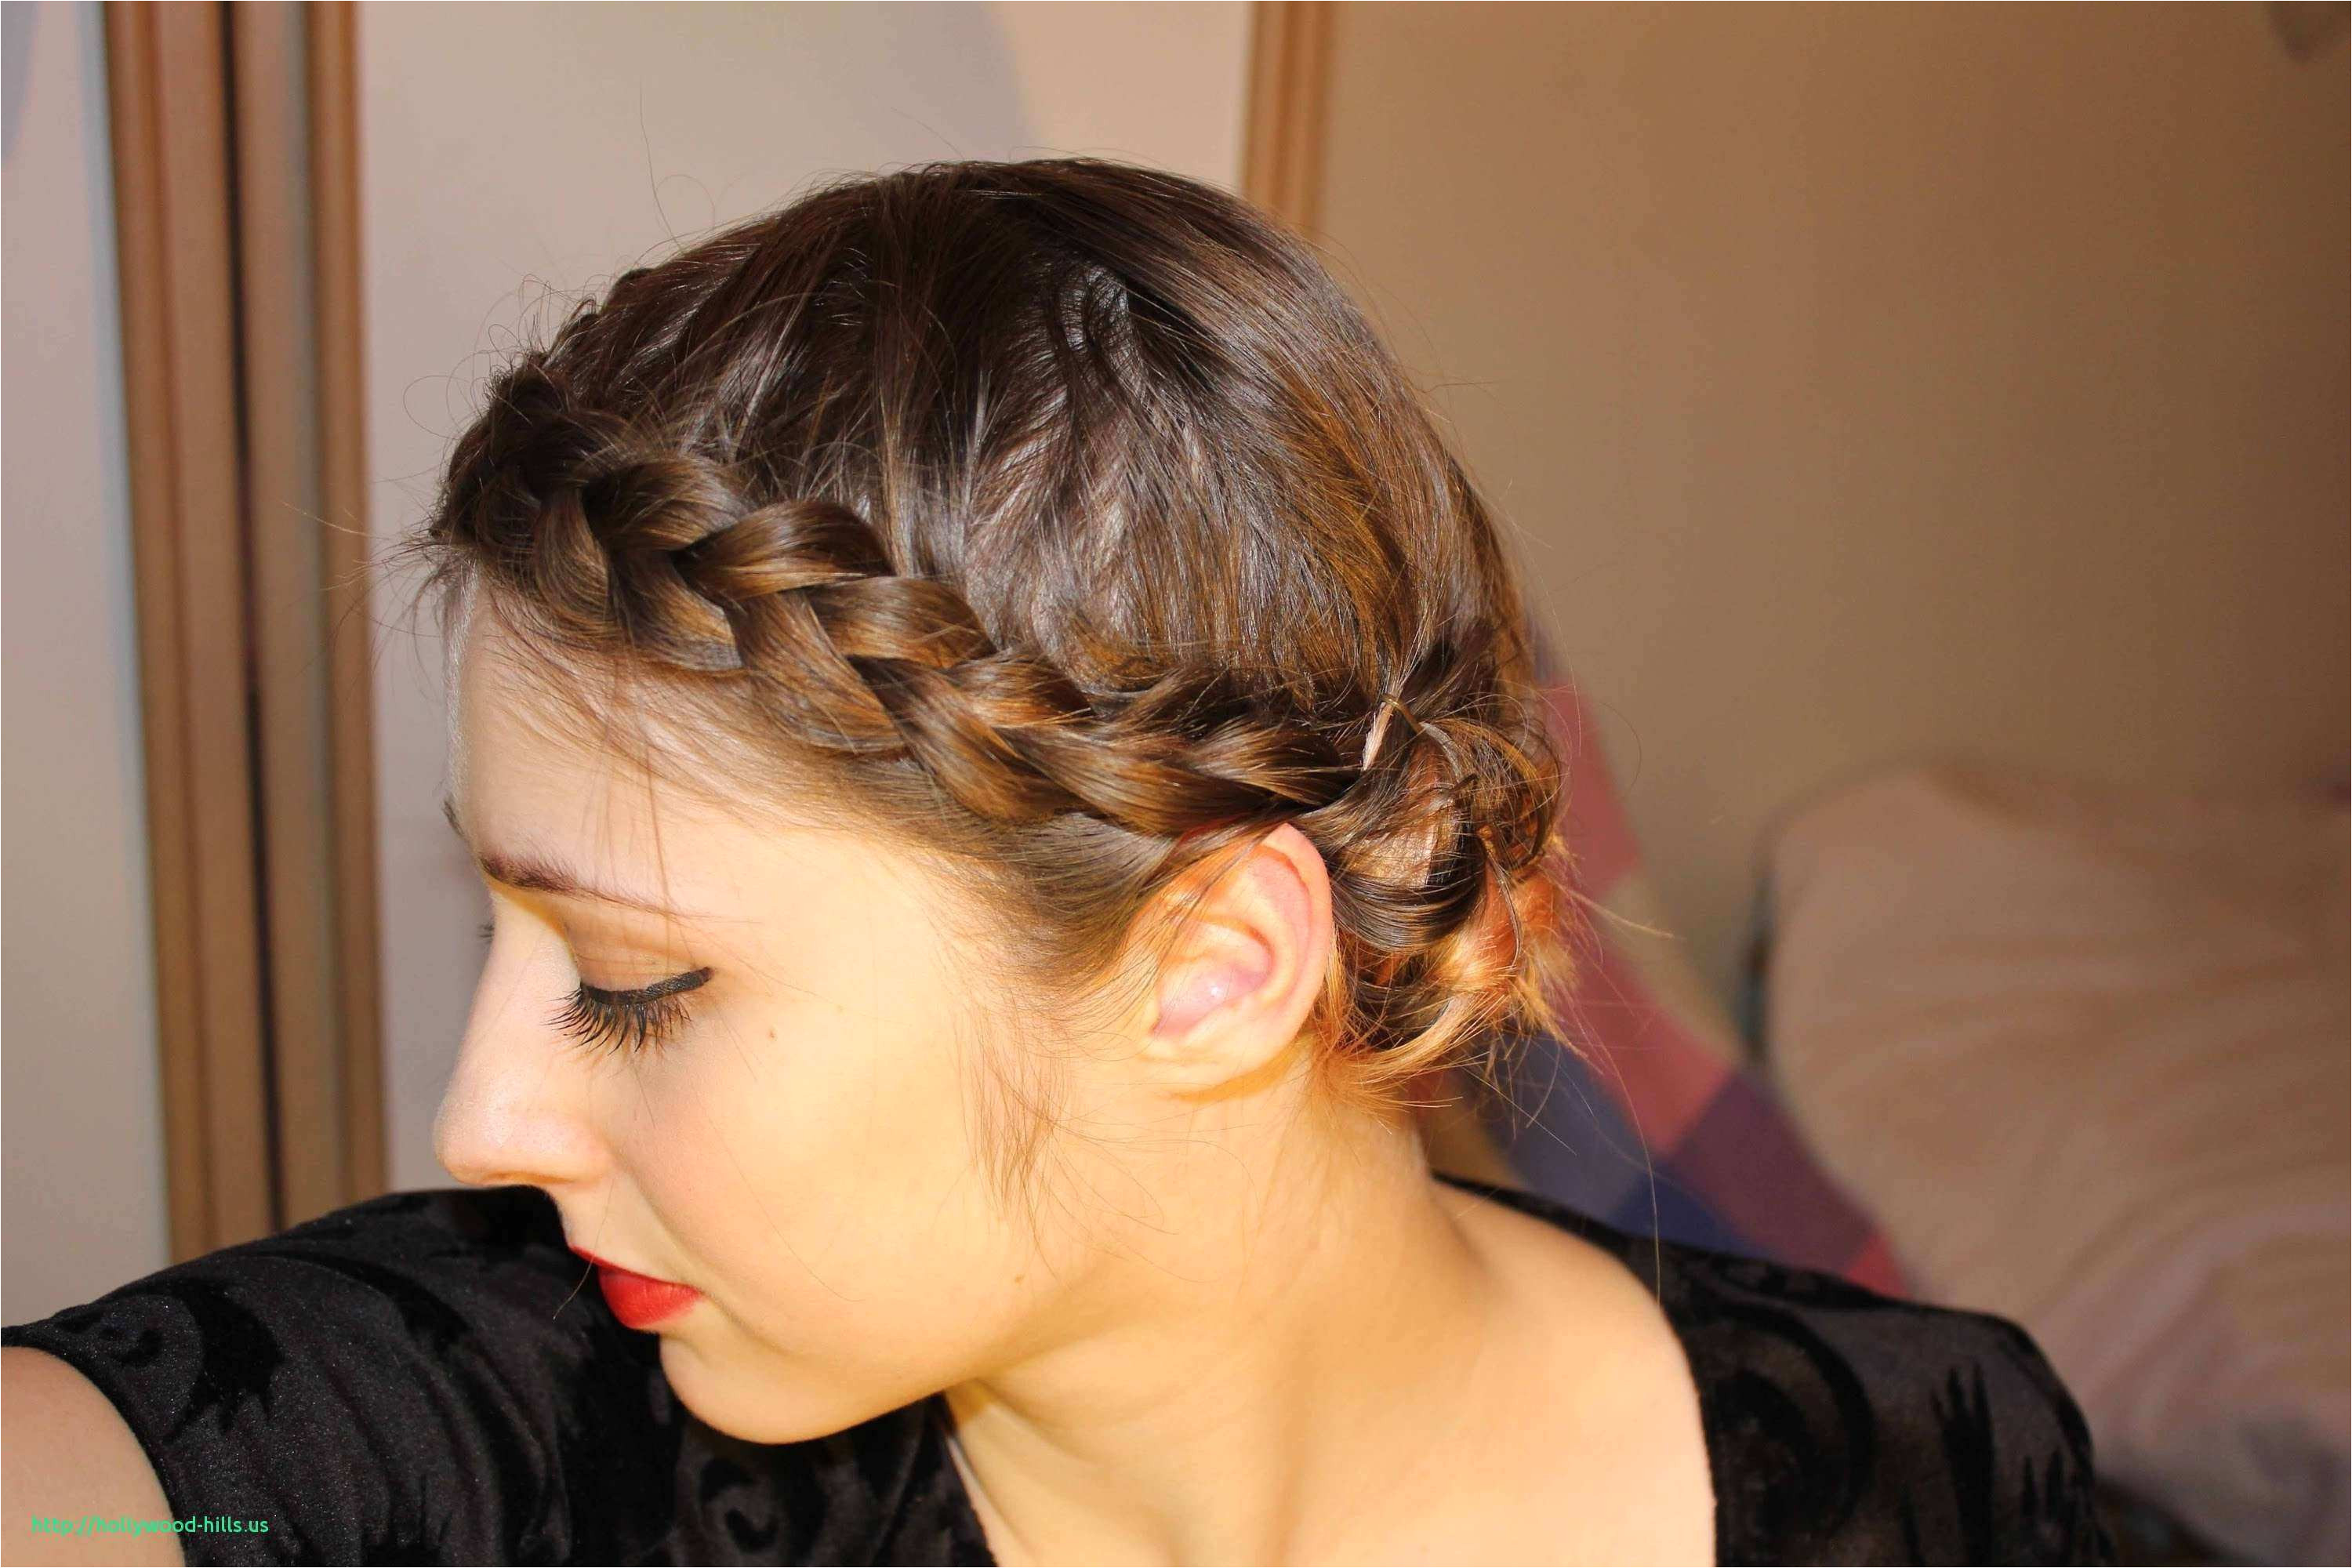 Braid Hairstyles for Girls Easy Awesome Simple Braided Hairstyles Awesome Easy Cute Hairstyles for Little